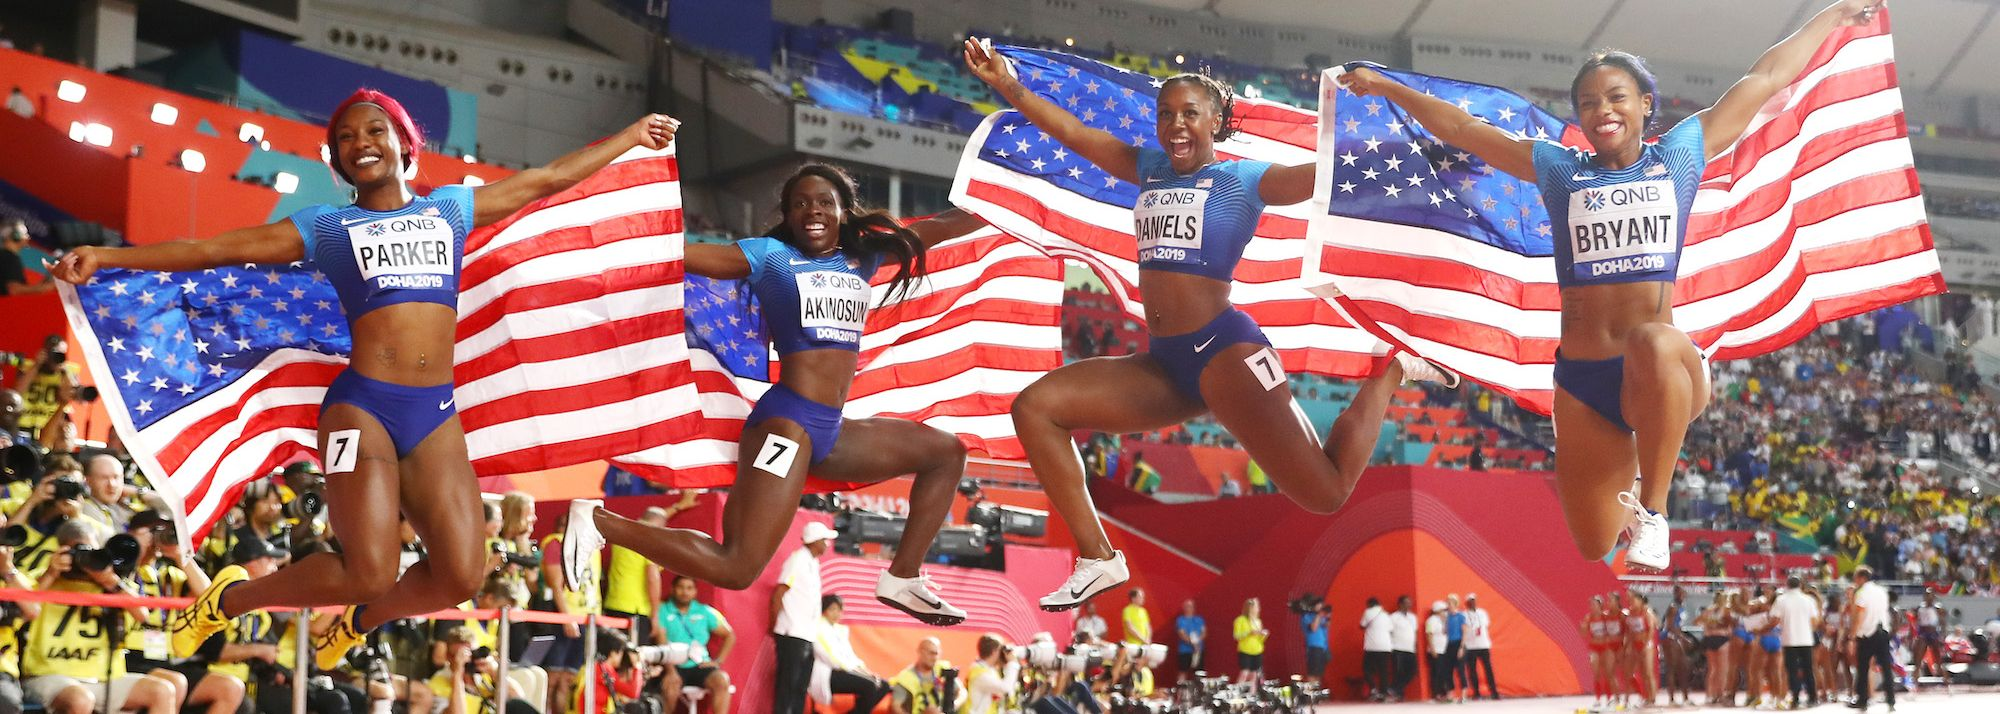 /competitions/world-athletics-championships/oregon22/news/news/team-usa